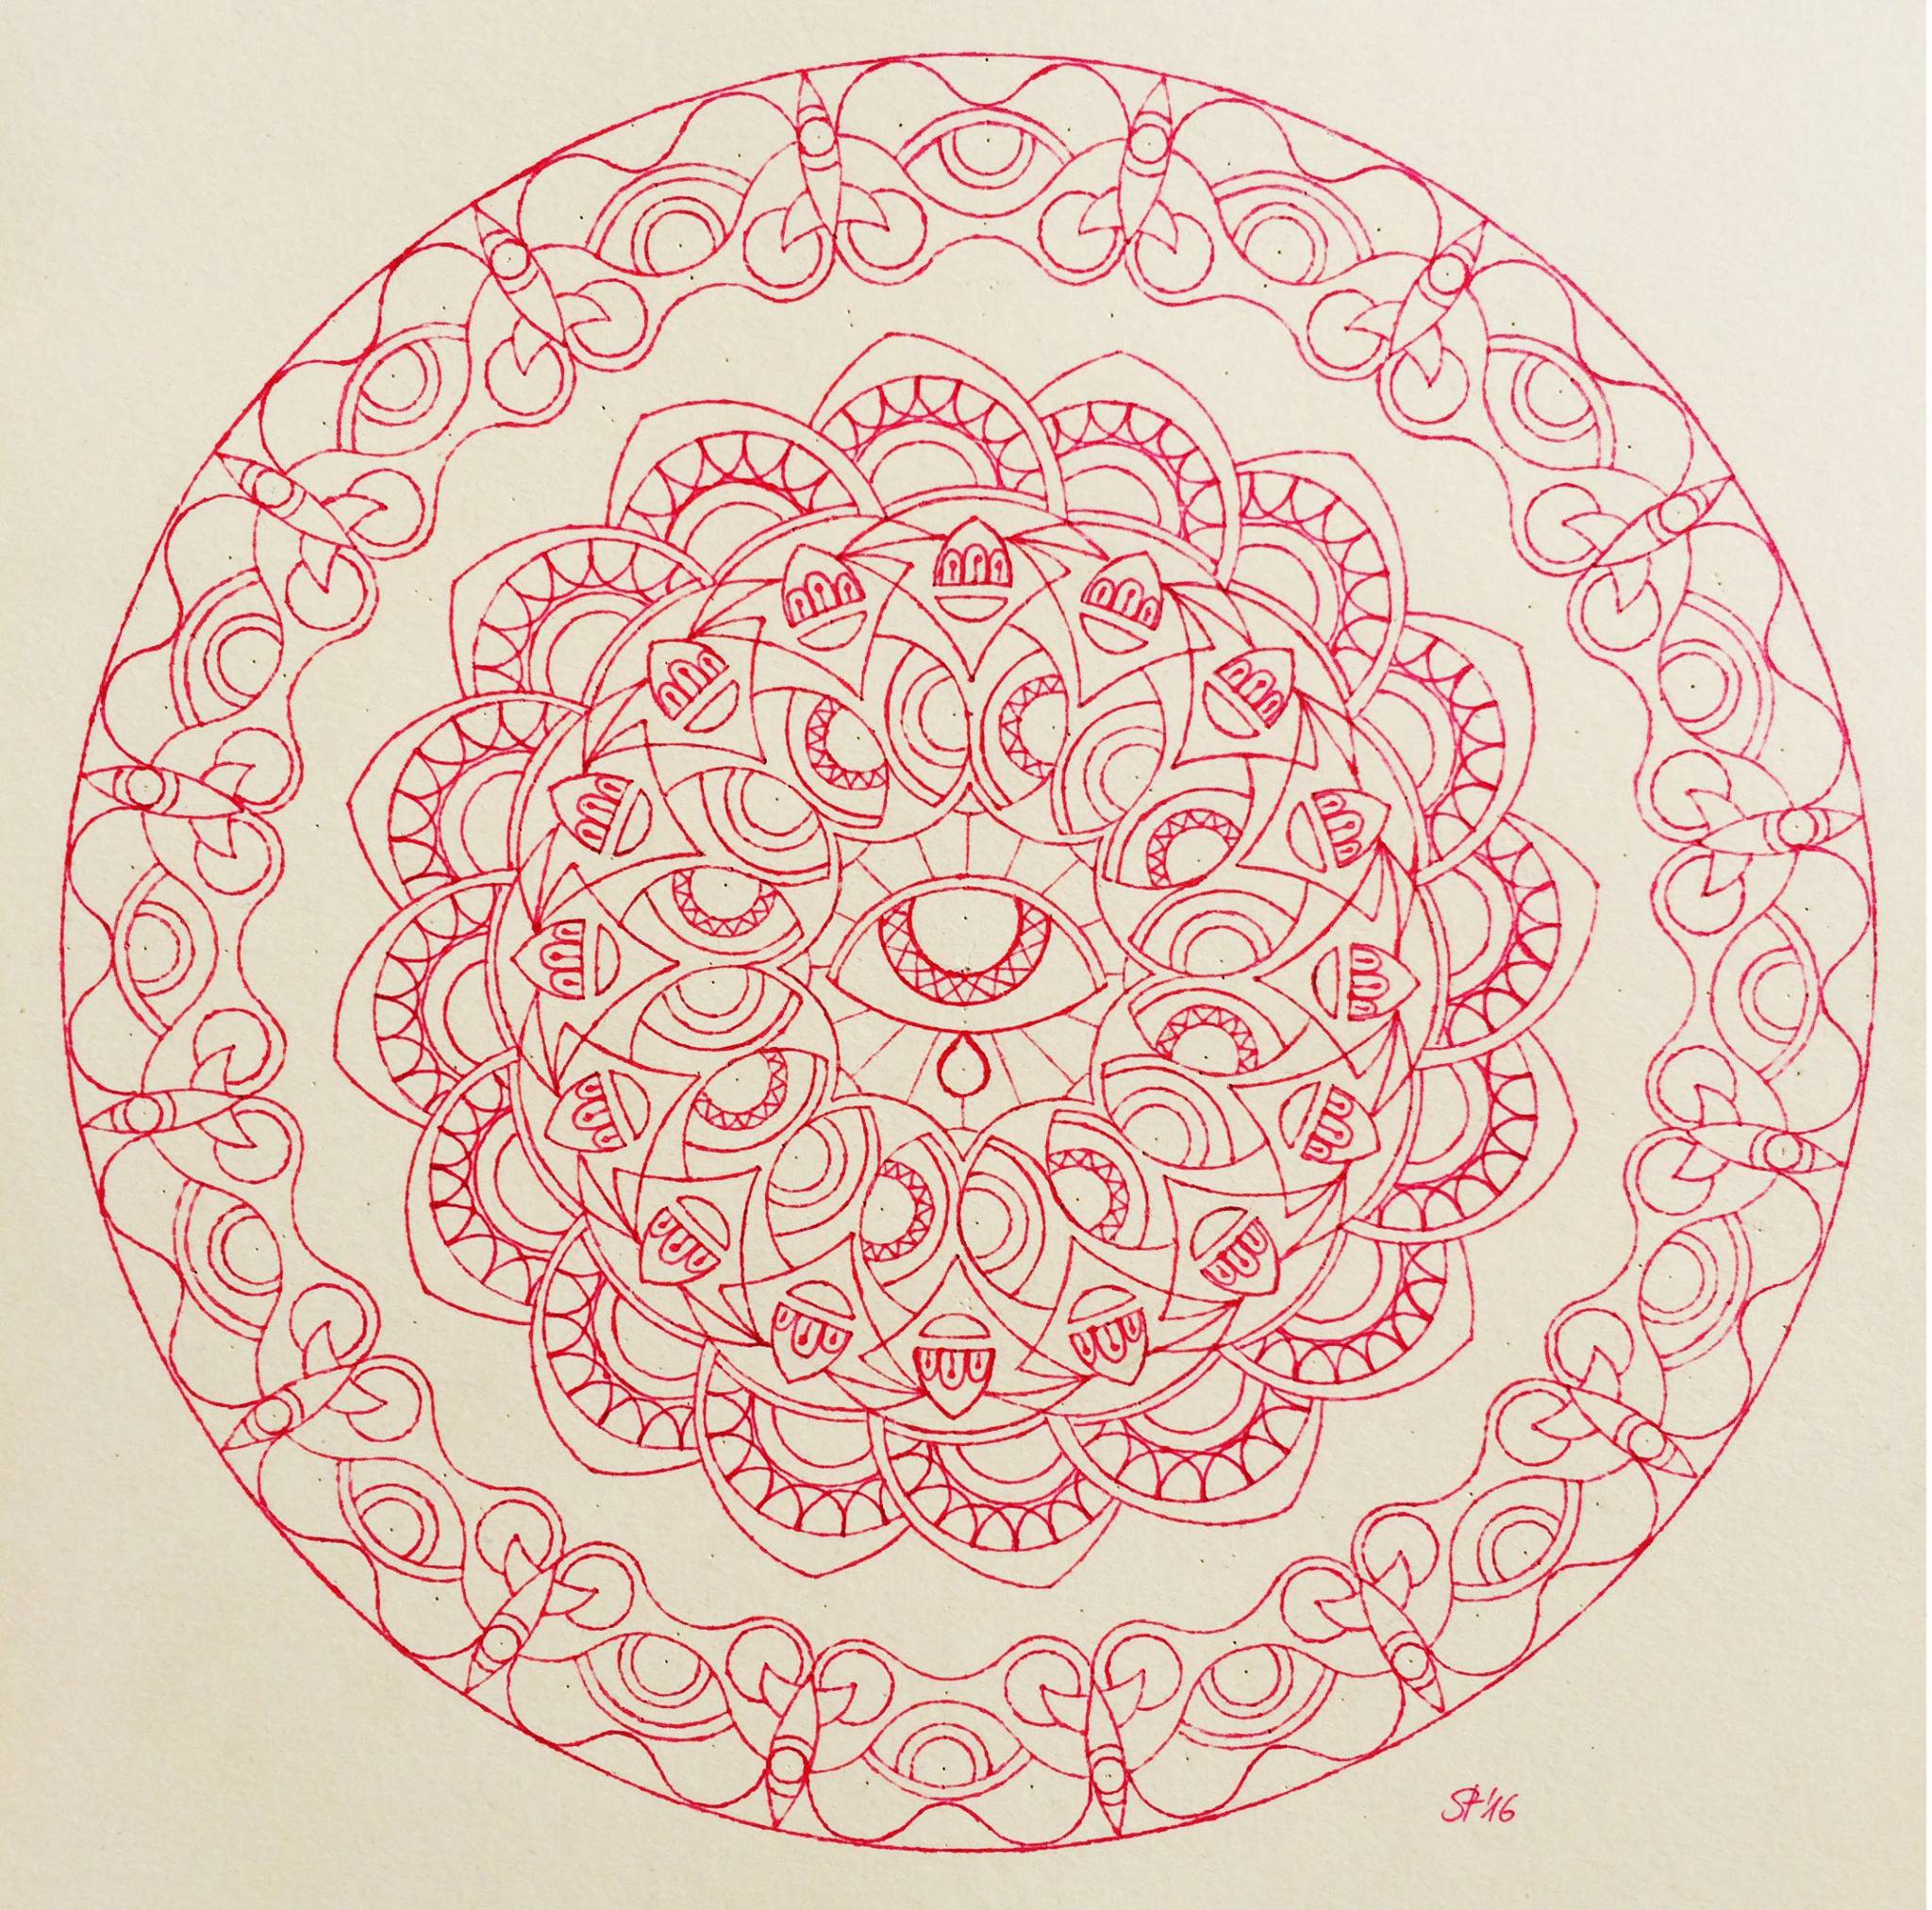 Free Printout for Mandala Coloring- free download printout - artwork by Tine Steiss for happiness.org